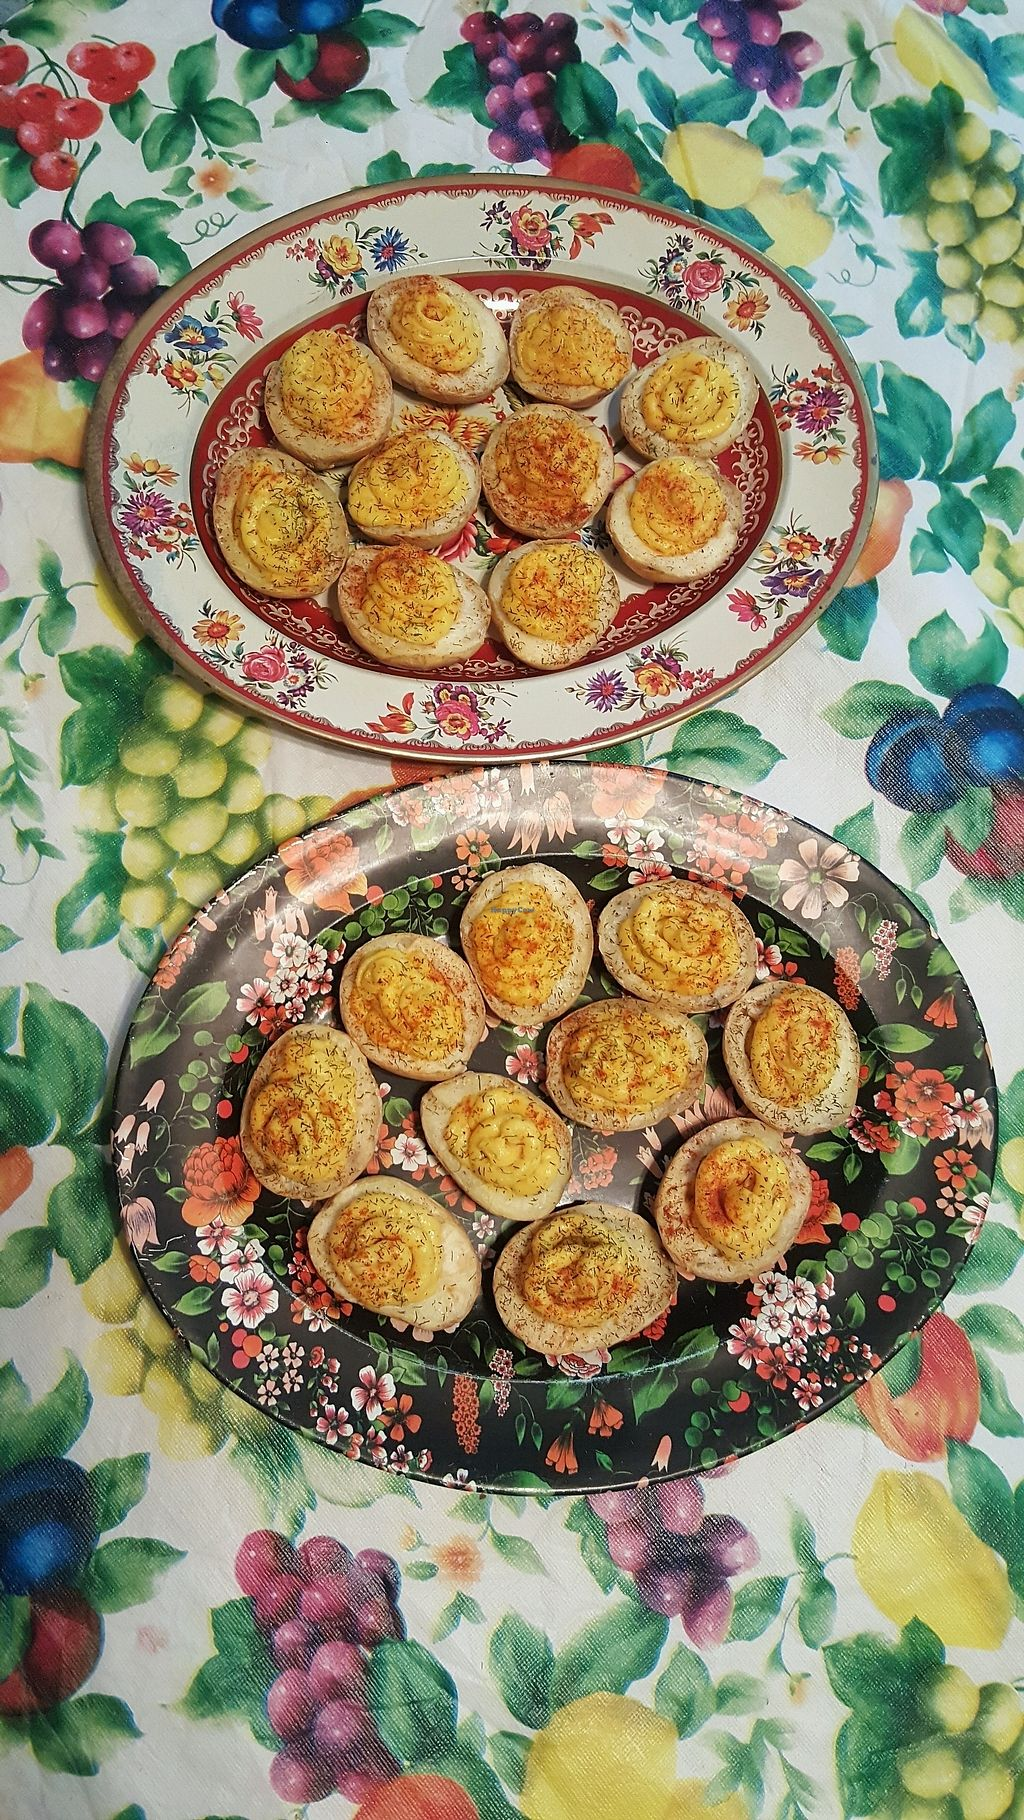 "Photo of Vahimsa  by <a href=""/members/profile/beccajane"">beccajane</a> <br/>vegan deviled potatoes for potluck  <br/> September 23, 2017  - <a href='/contact/abuse/image/101491/307292'>Report</a>"